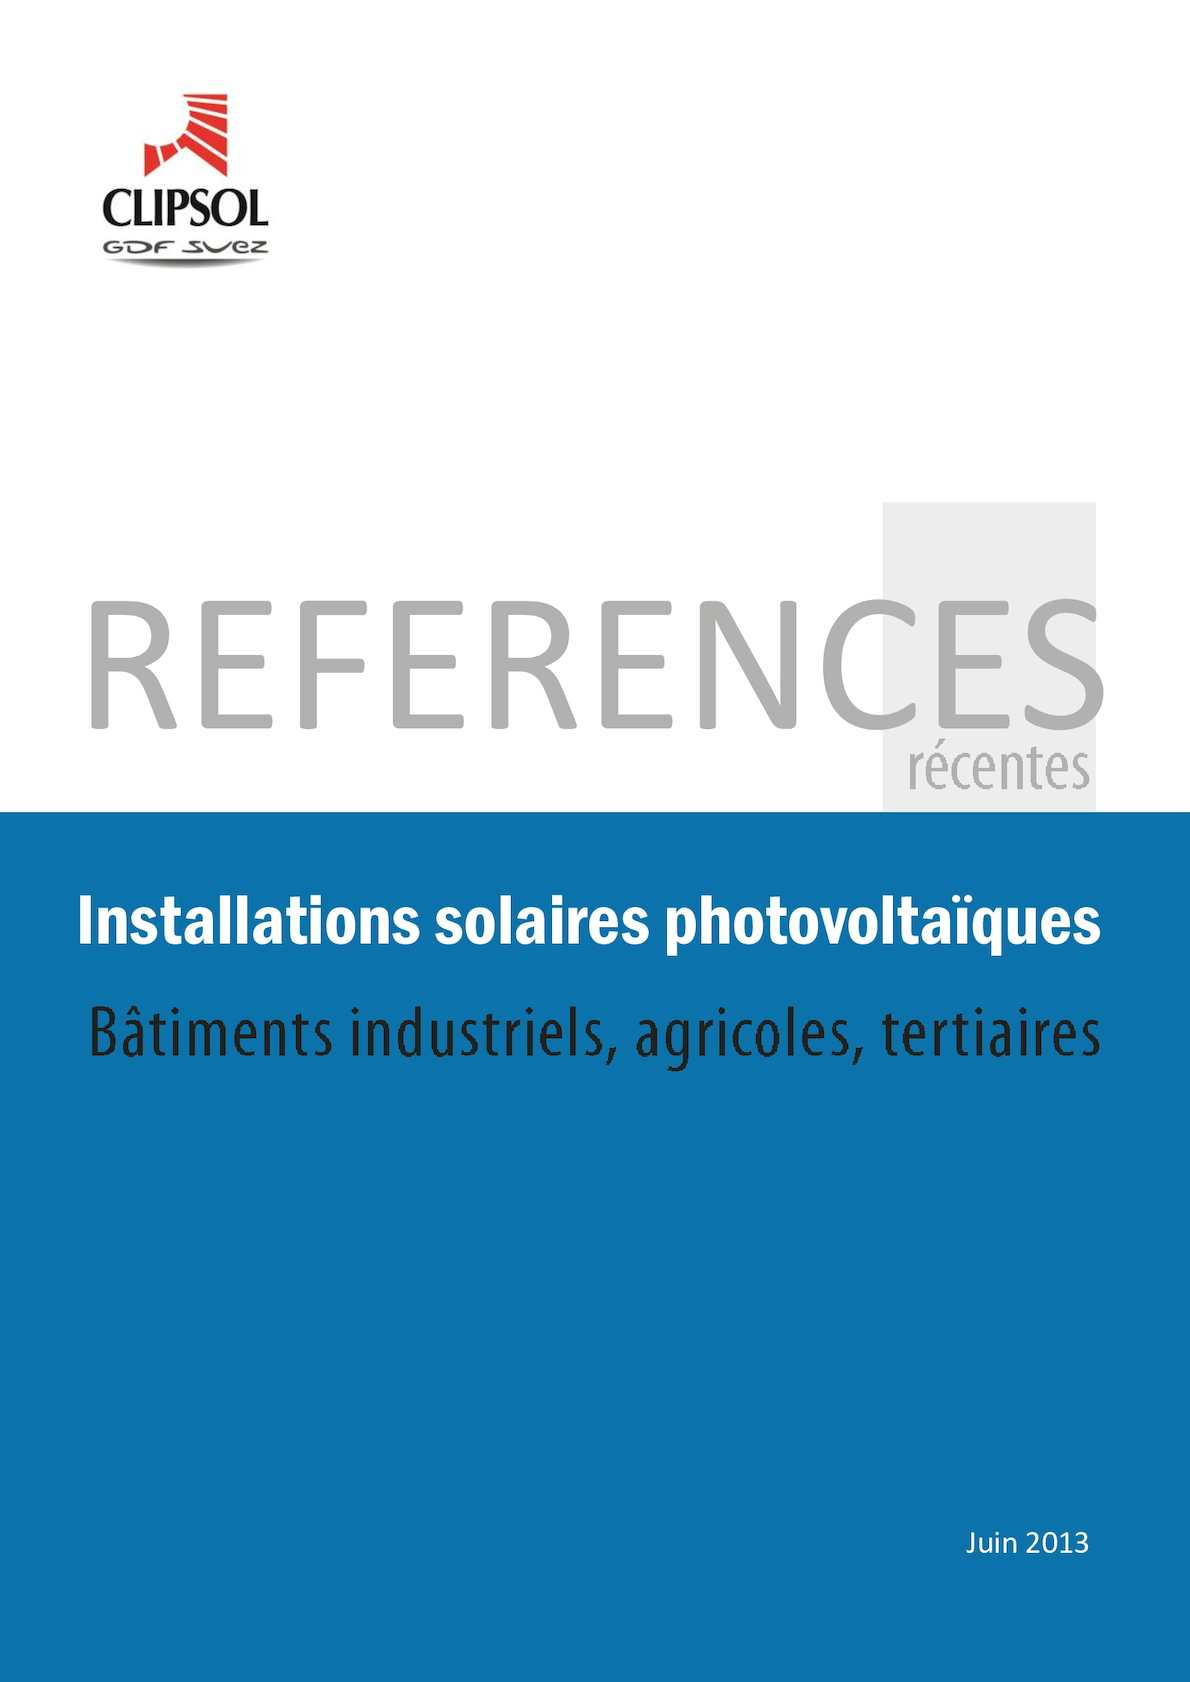 References CENTRALES PHOTOVOLTAIQUES CLIPSOL